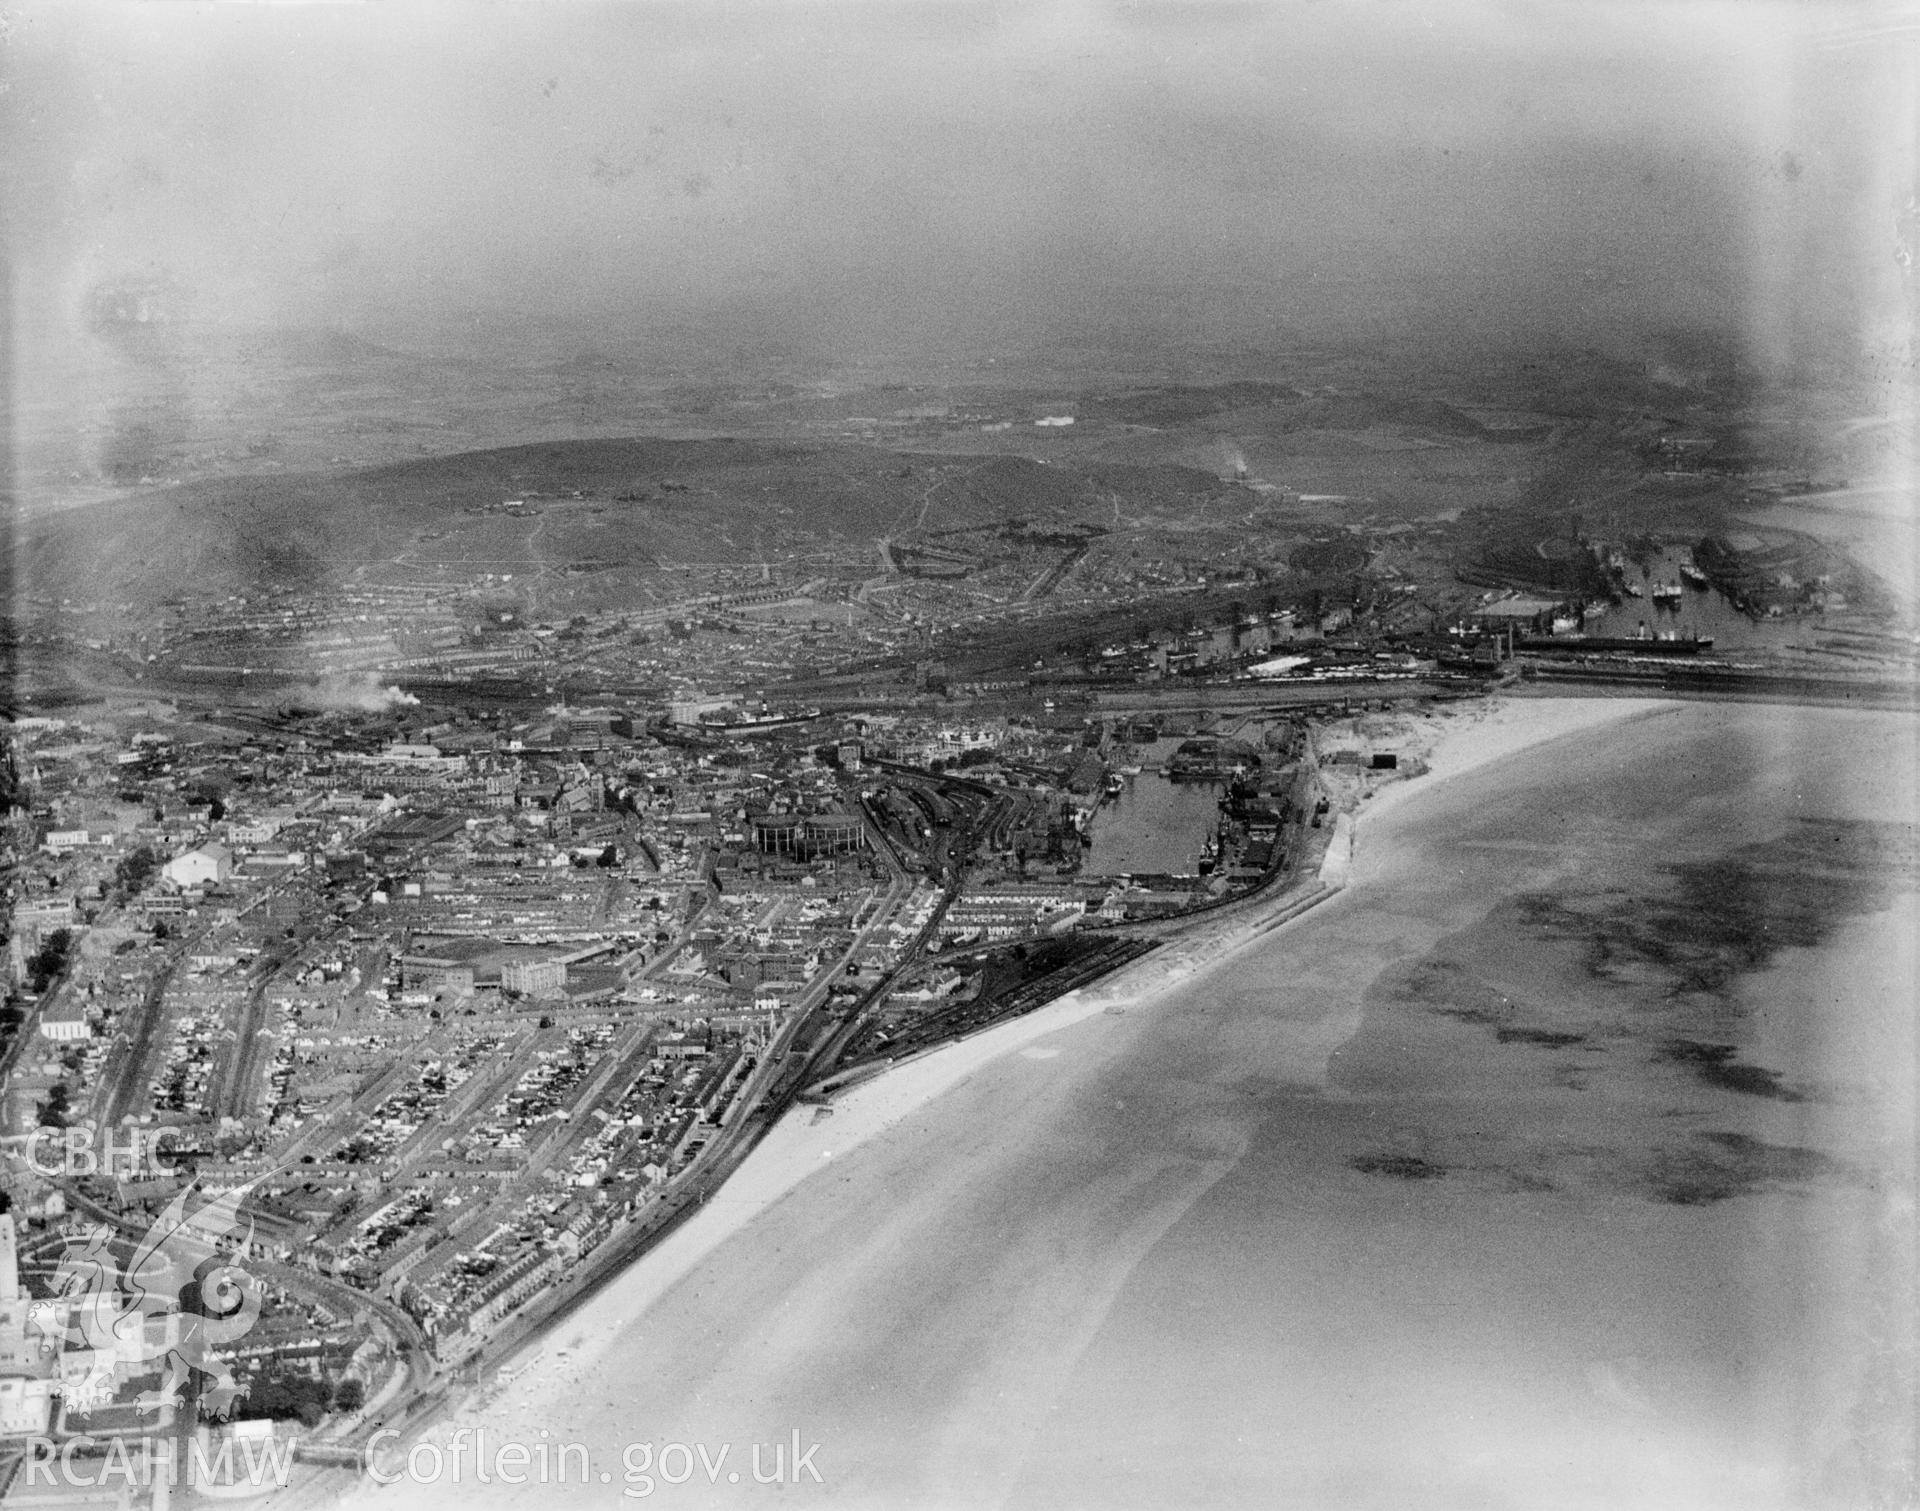 General view of Swansea, oblique aerial view. 5?x4? black and white glass plate negative.